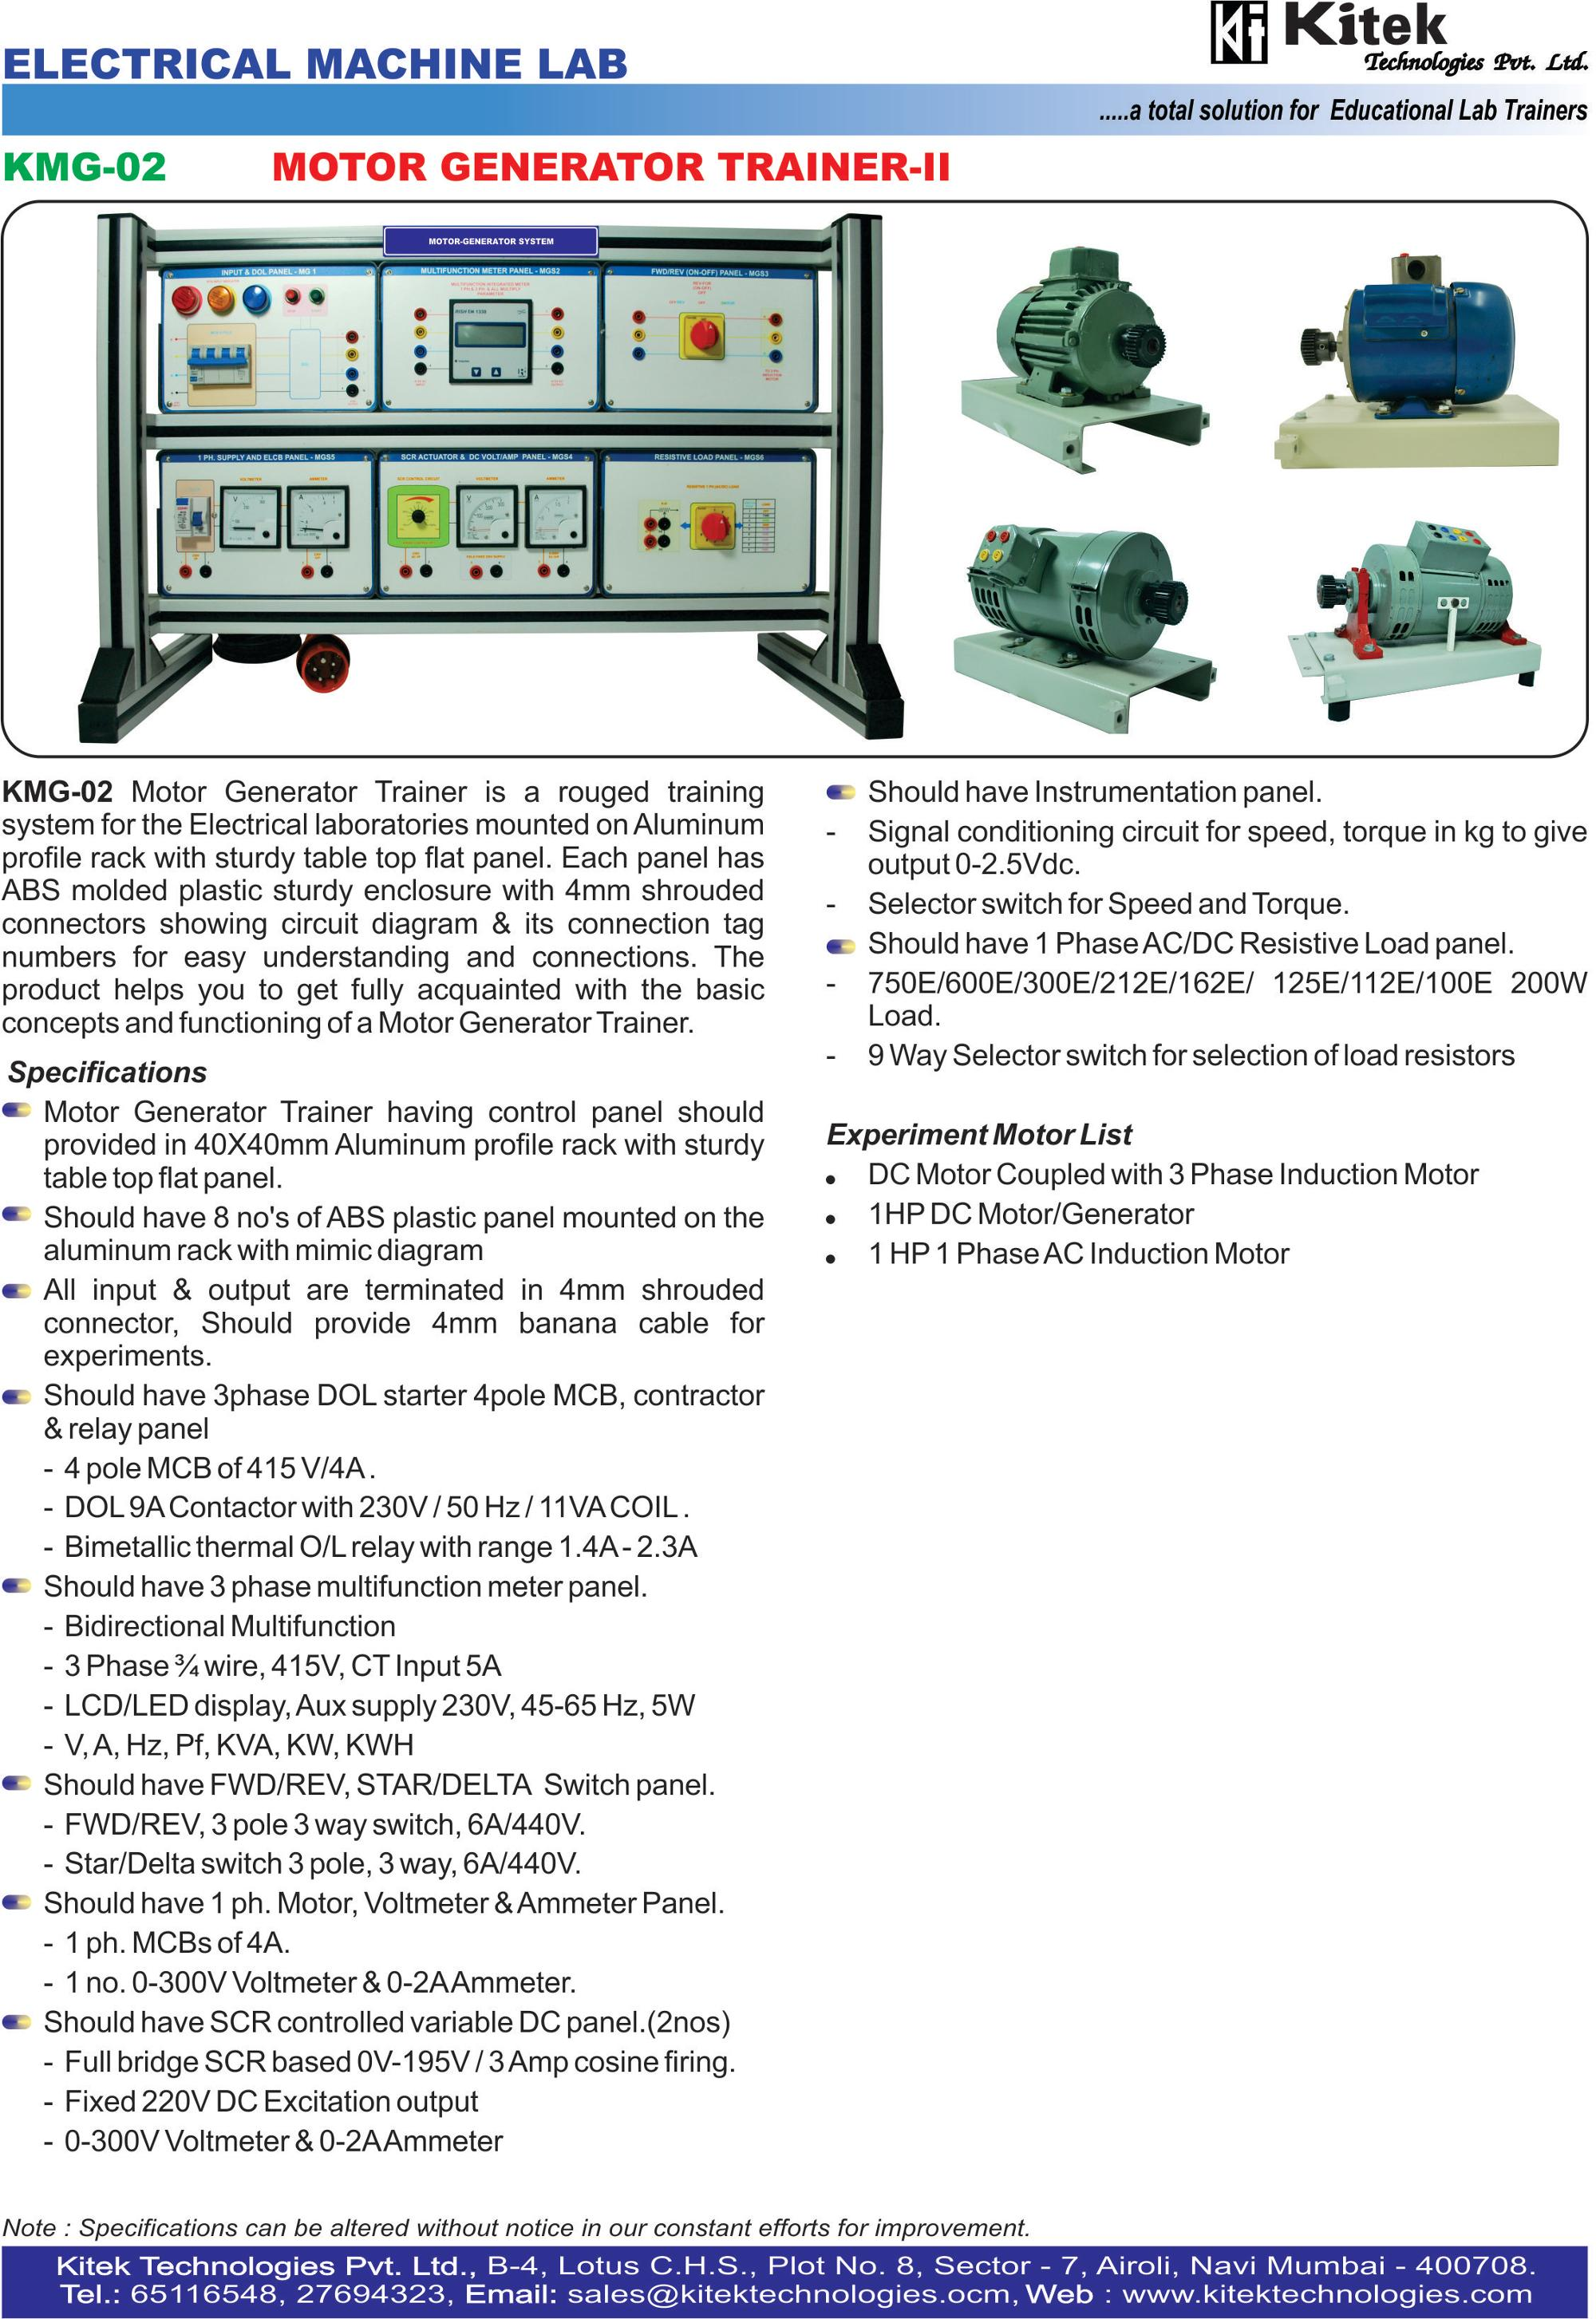 Motor Generator Trainer -V Electrical Machine Trainer